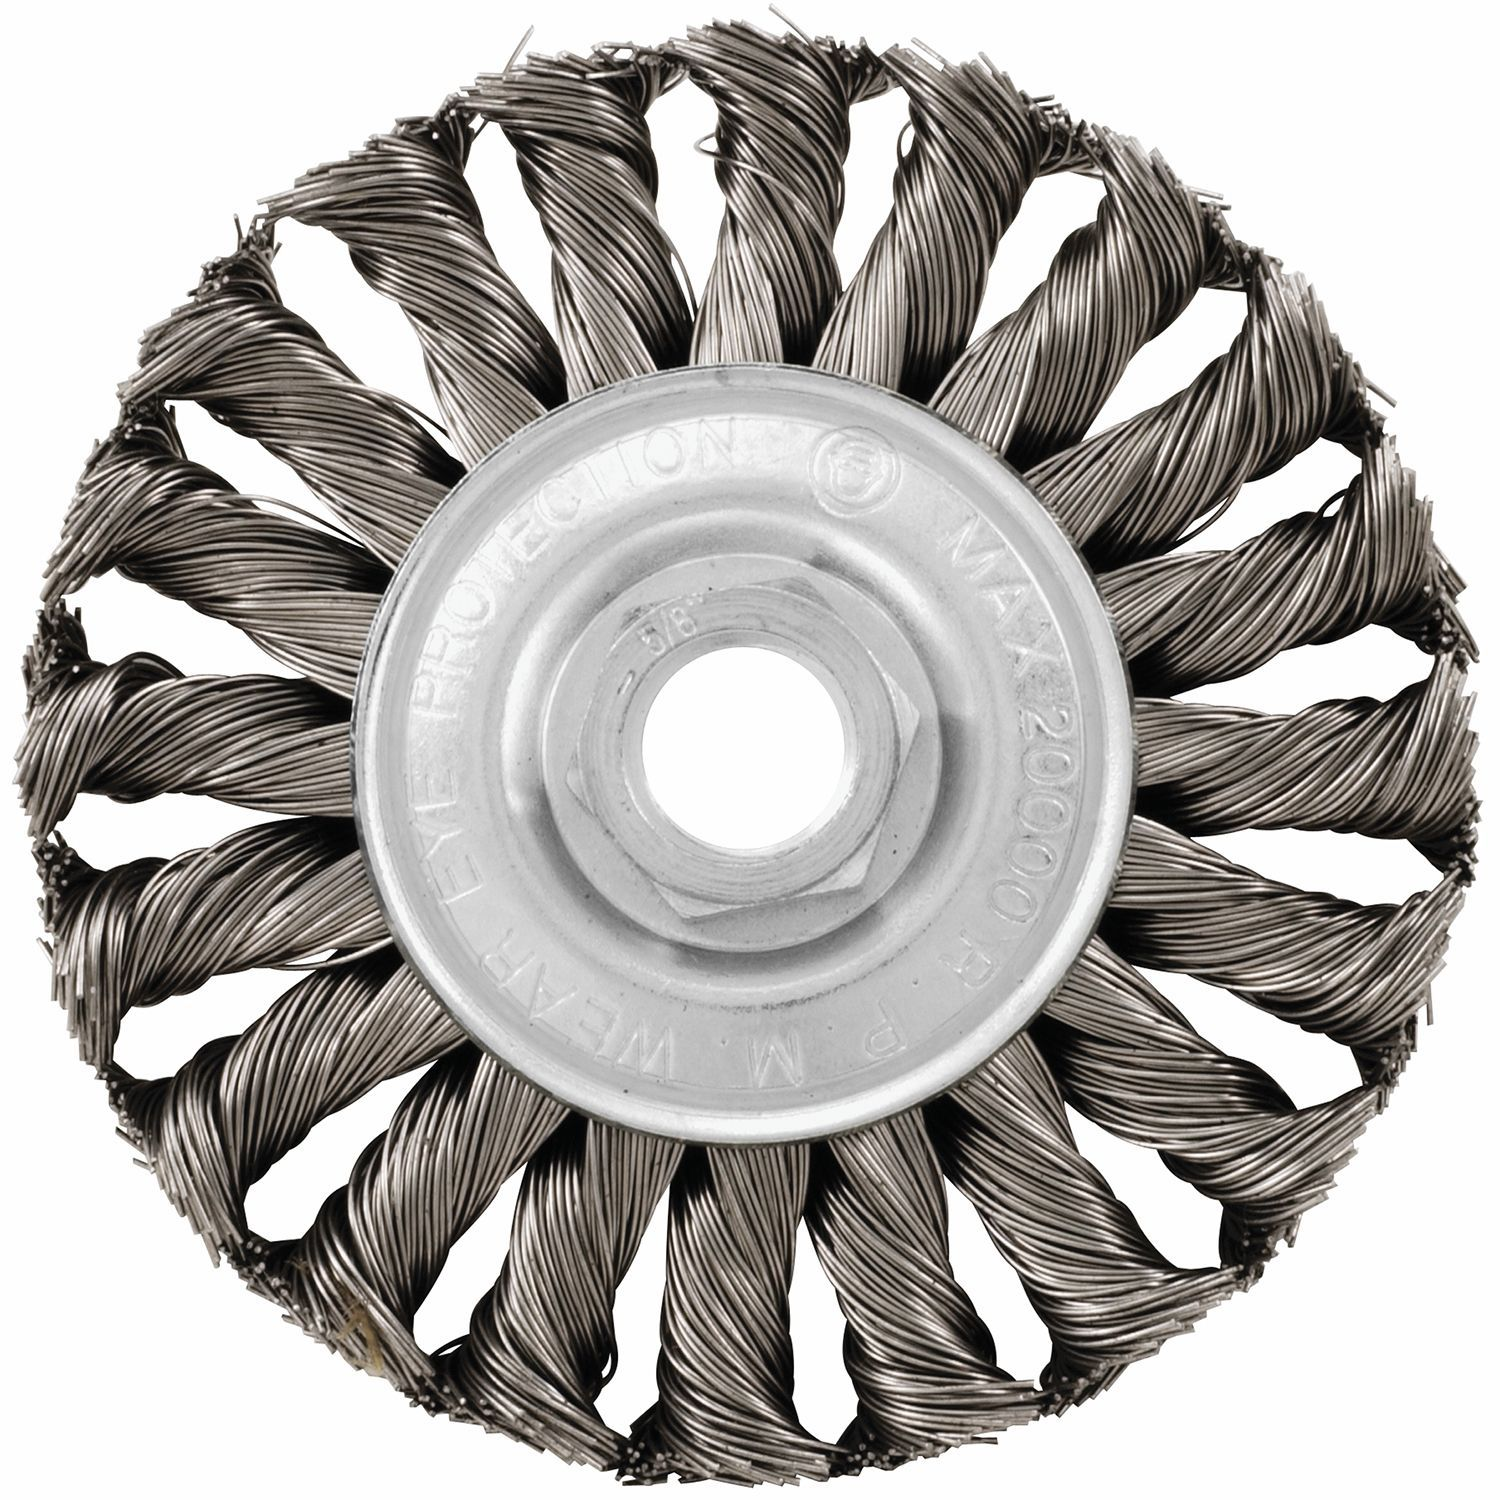 Vermont American 16856 4-inch Knotted Wire Wheel | Products ...